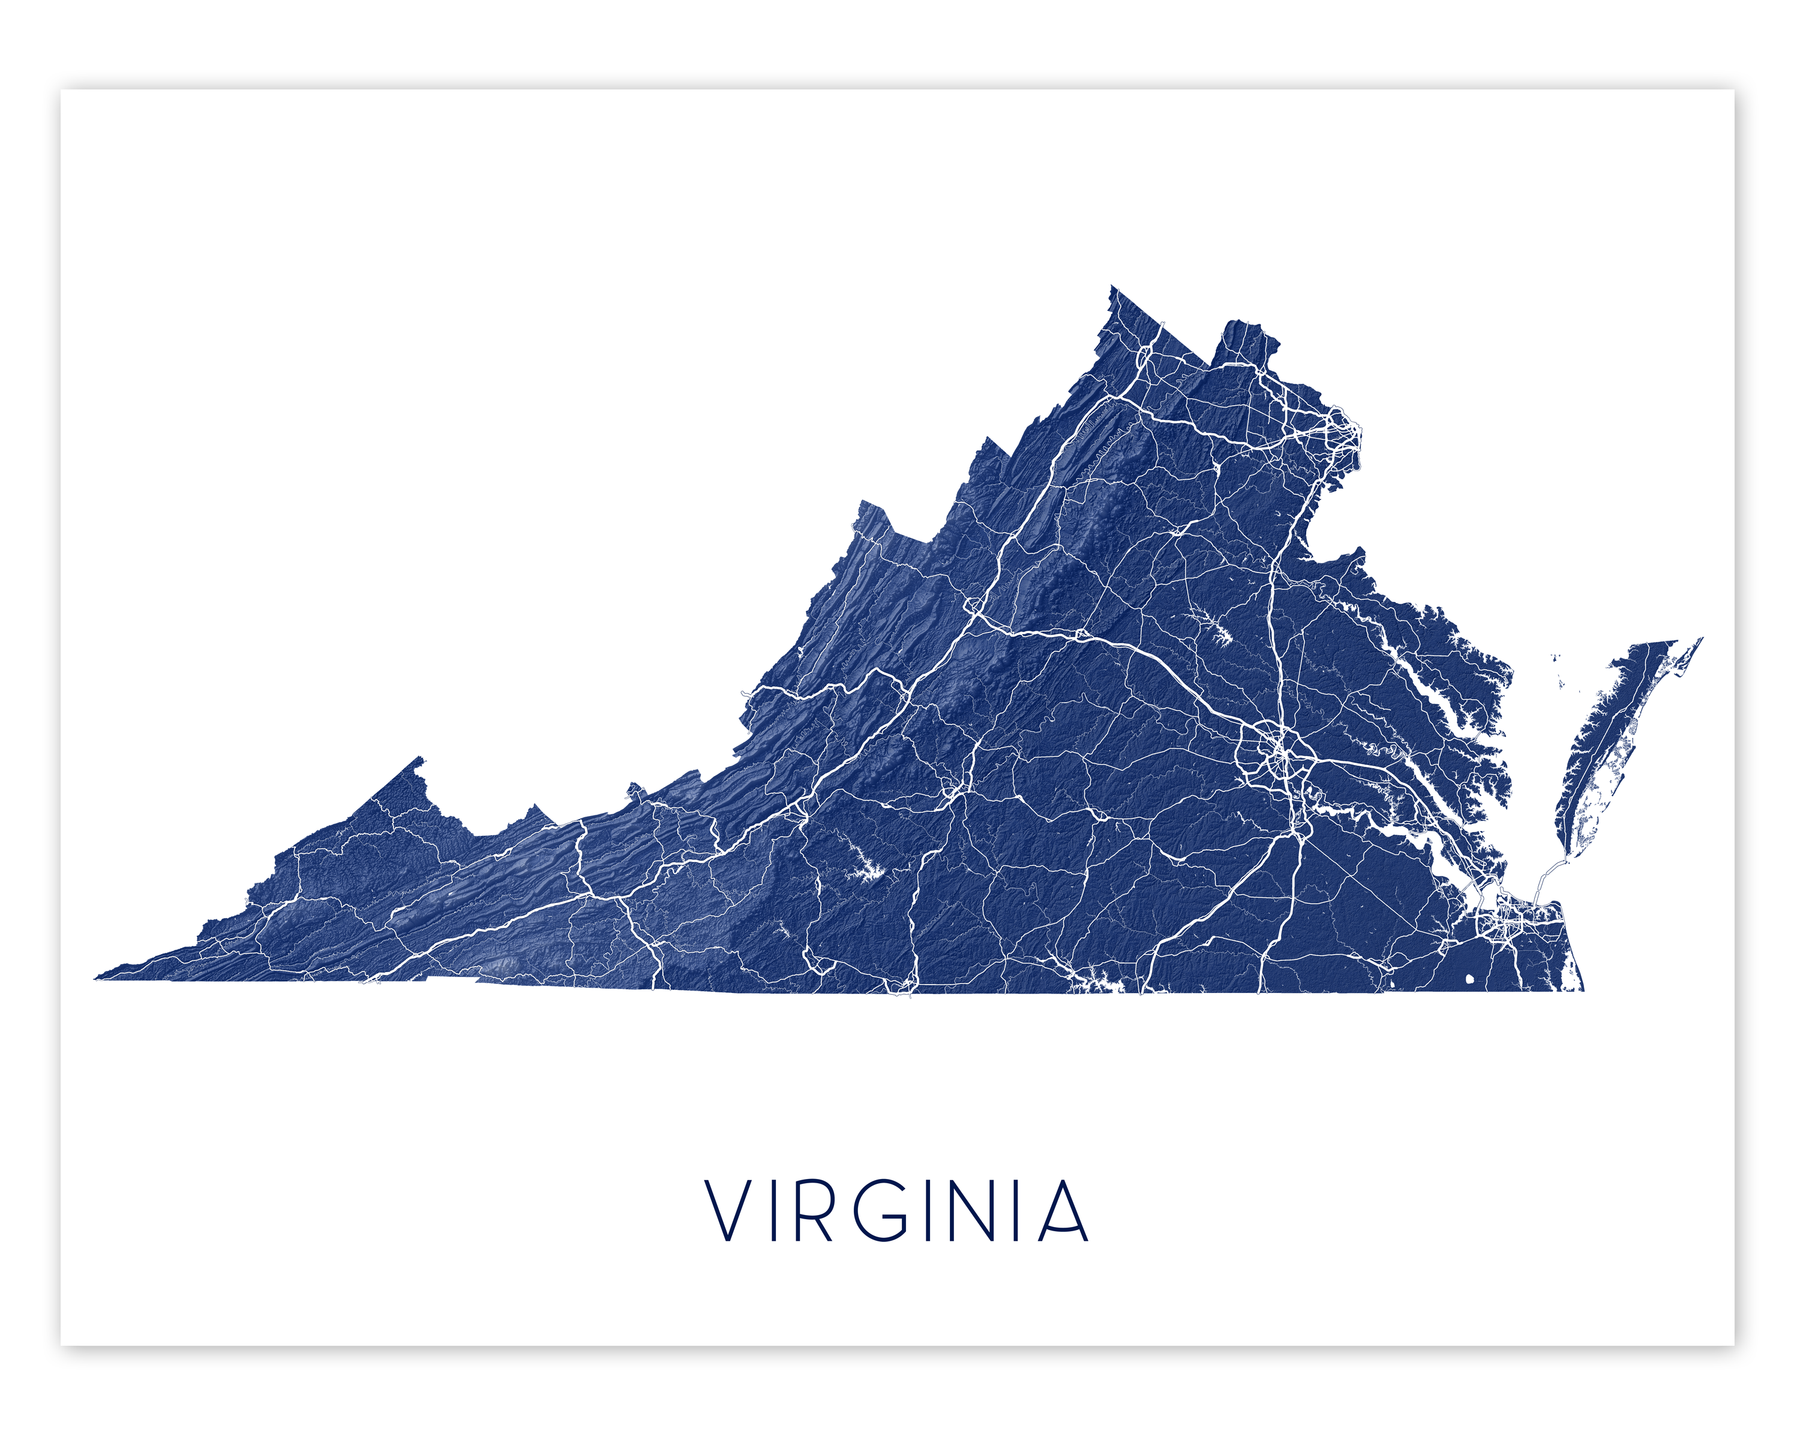 Virginia map print by Maps As Art.